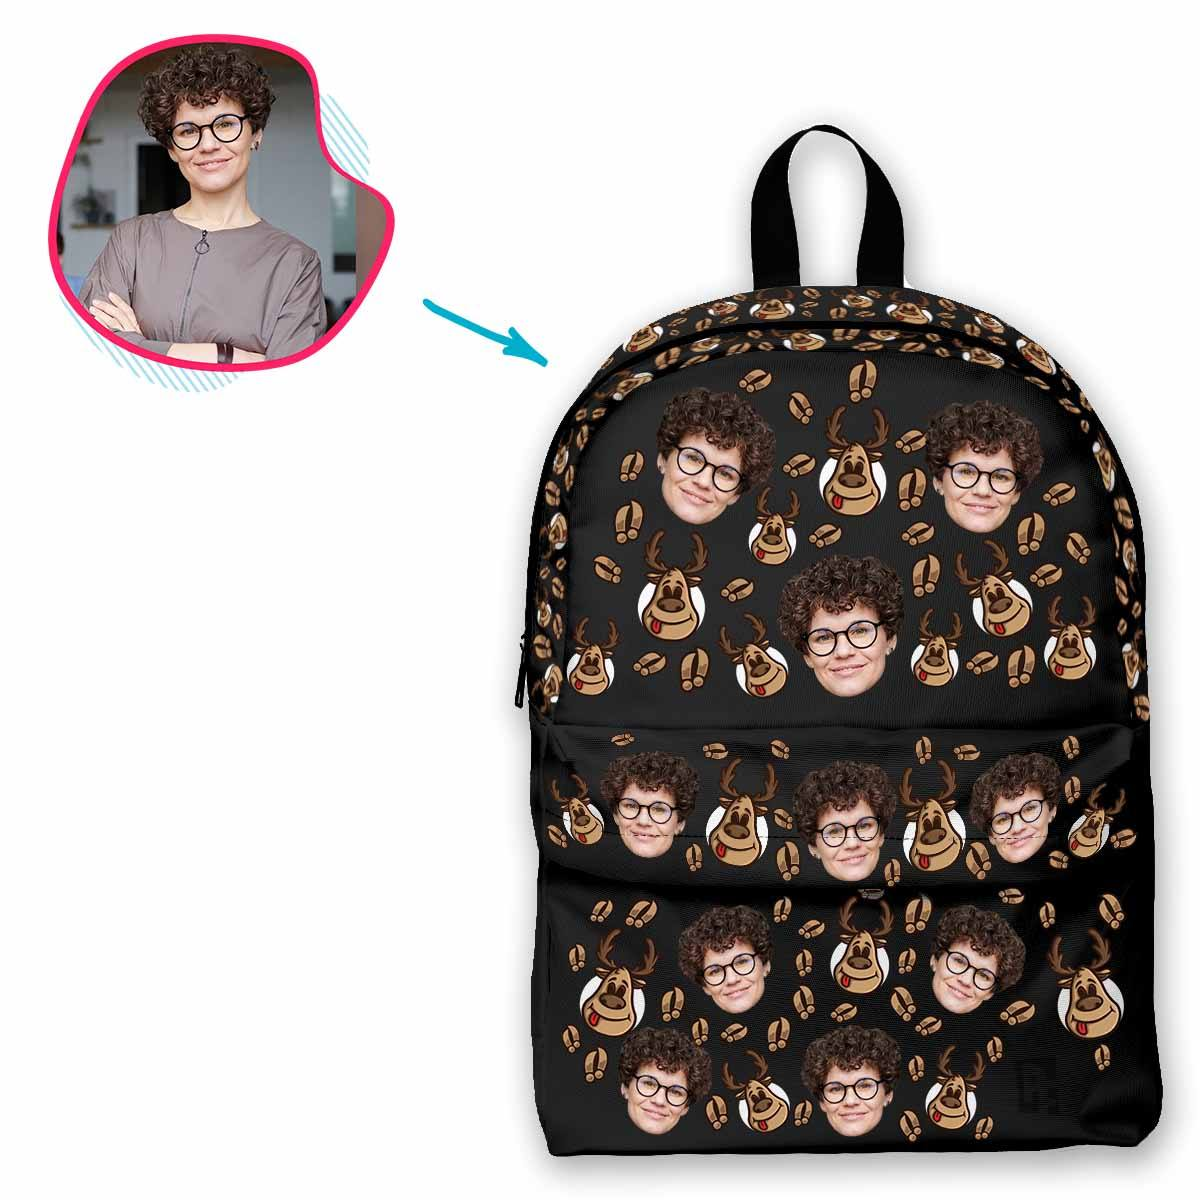 dark Deer Hunter classic backpack personalized with photo of face printed on it